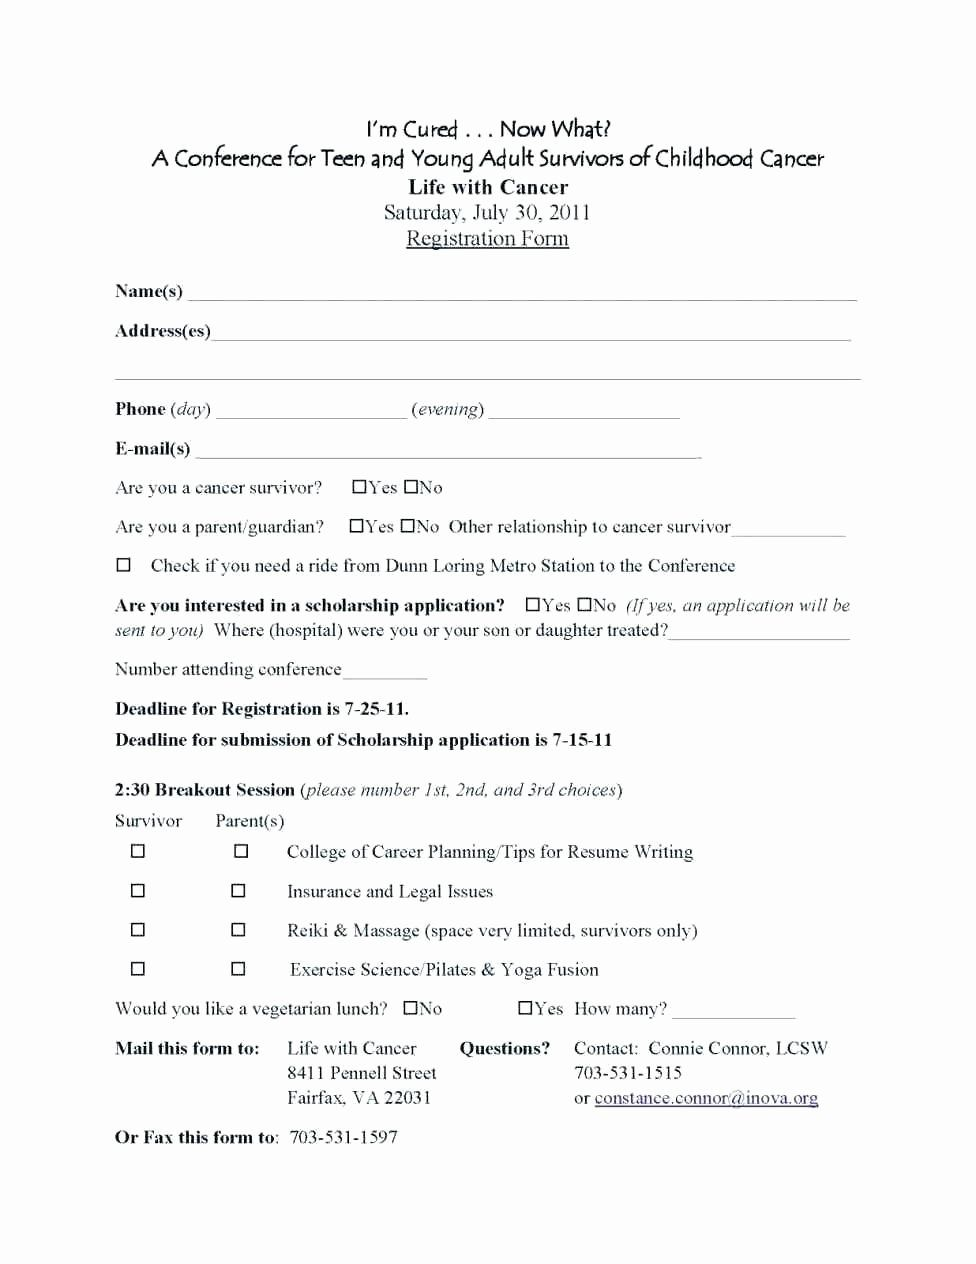 Conference Registration form Template Word Fresh College